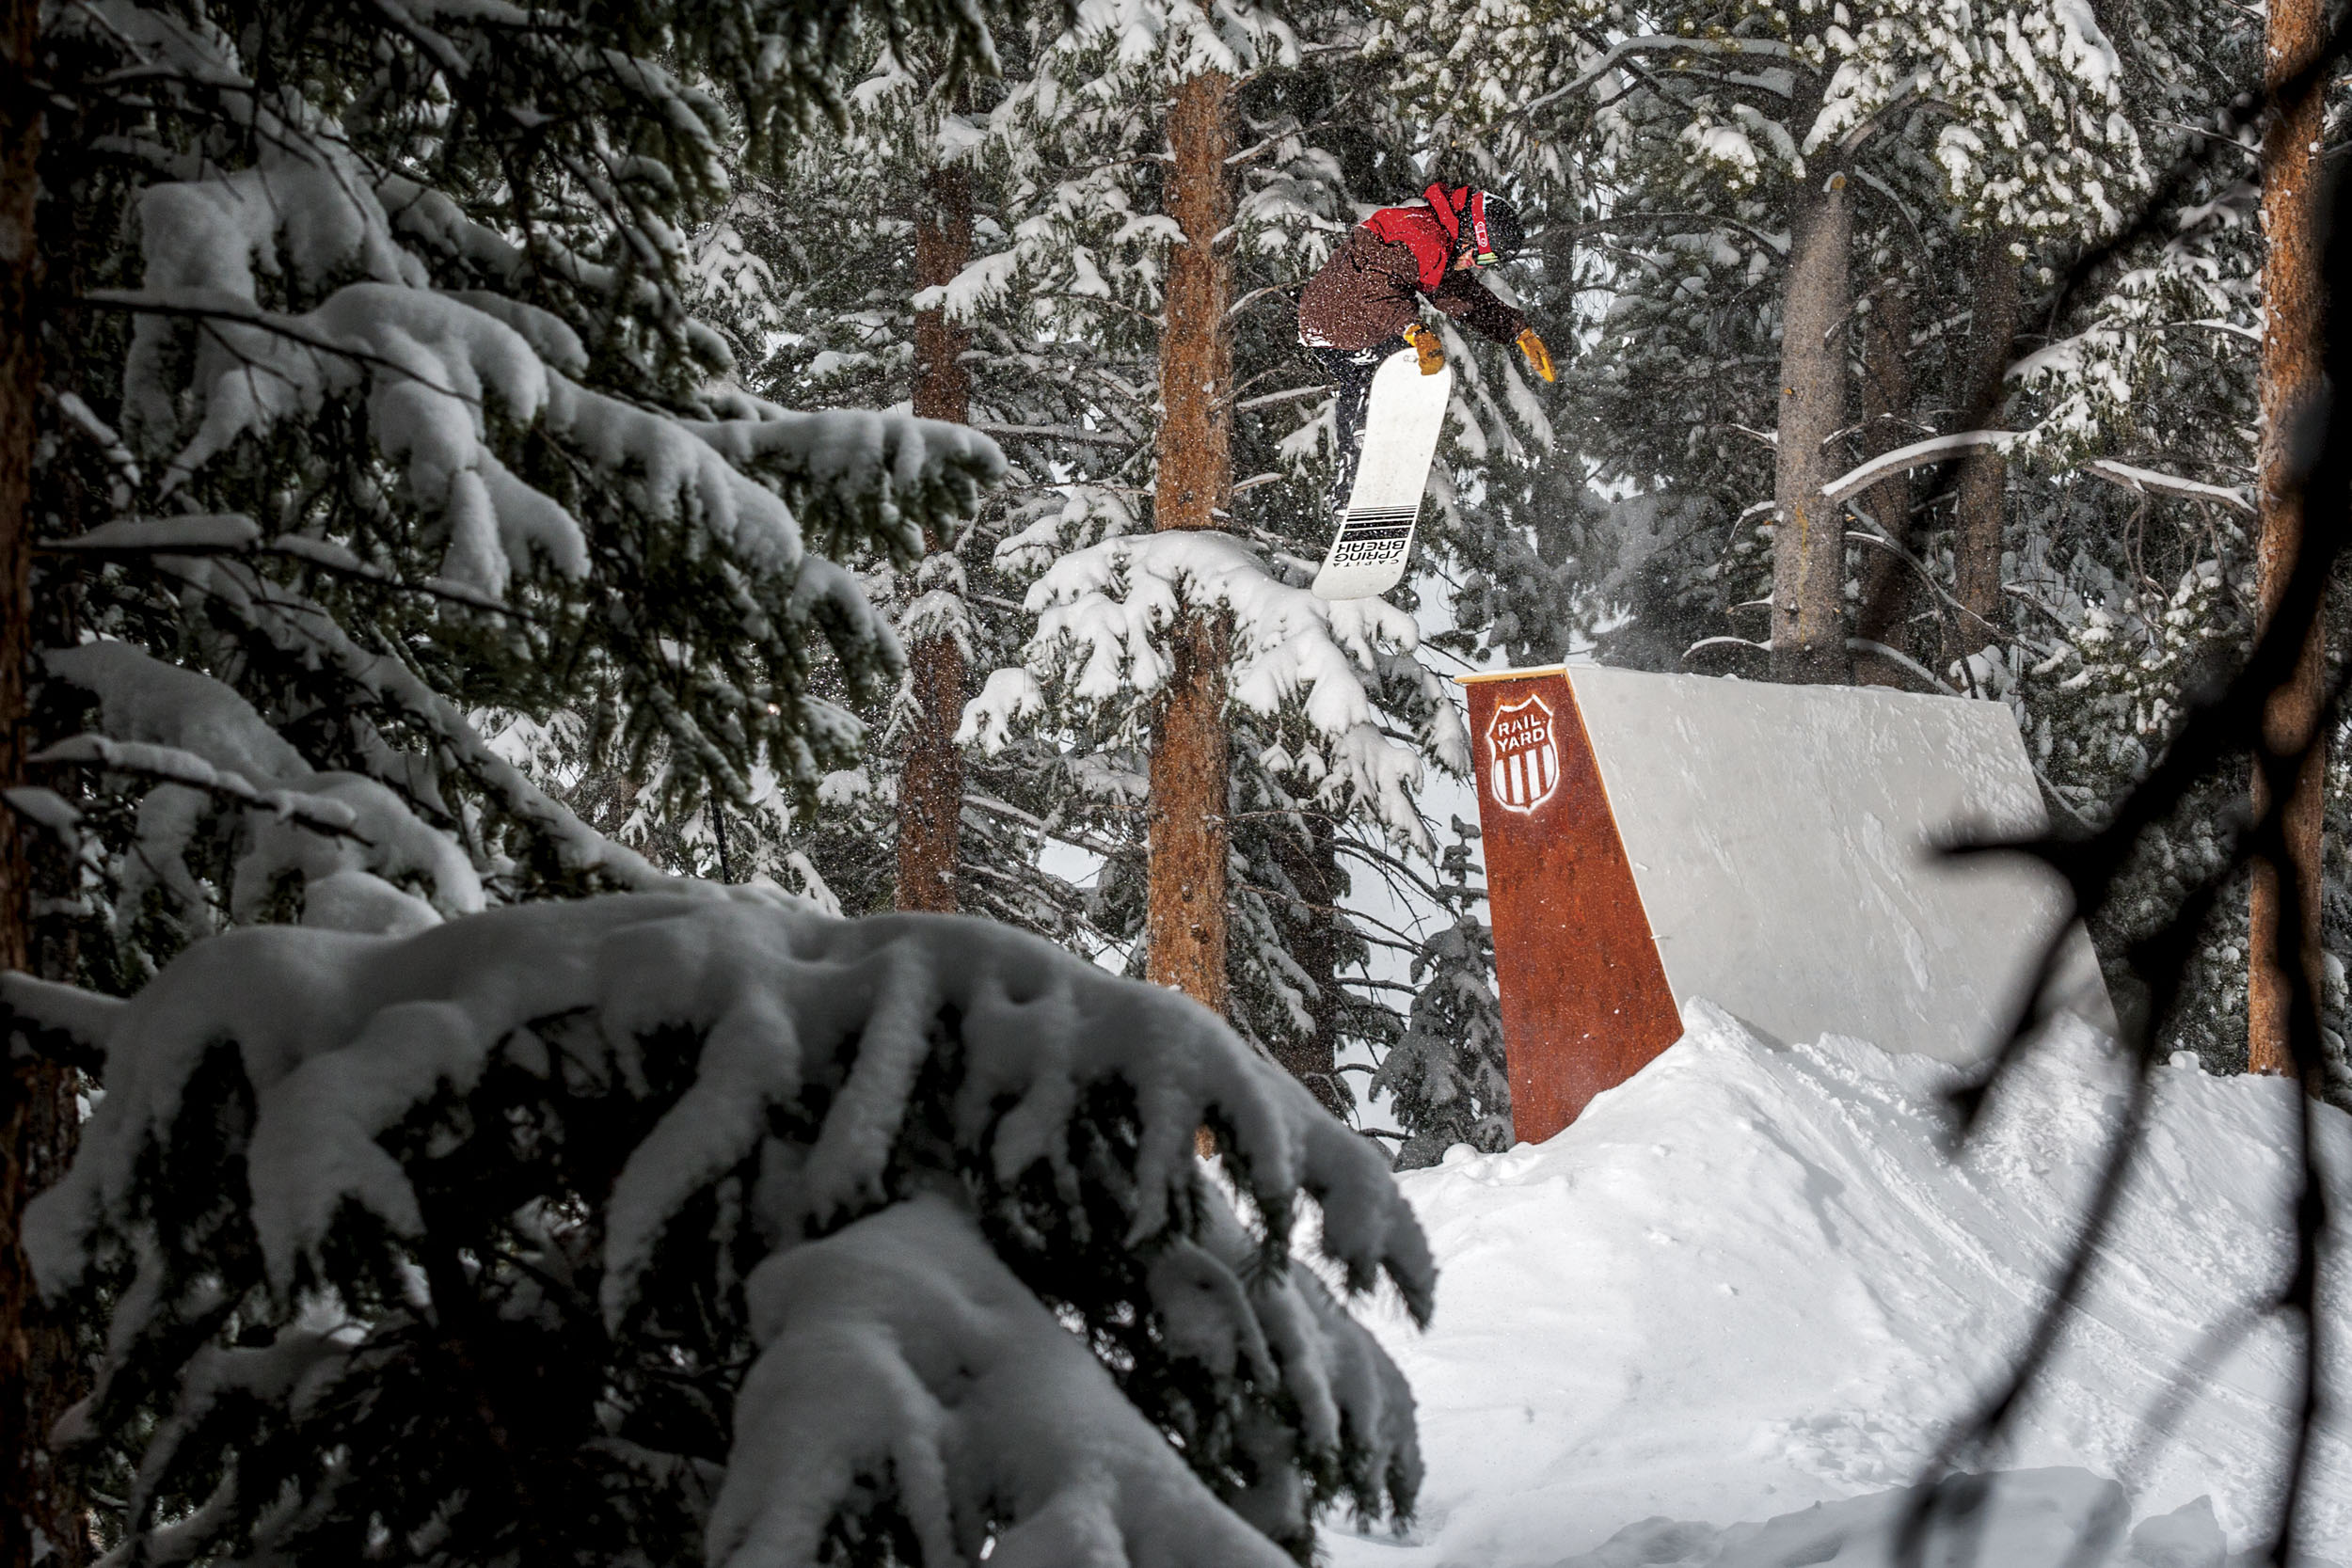 6fa0d0319c995 Jackson Fowler in Winter Park, CO. PHOTO: Chris Wellhausen. Click to view